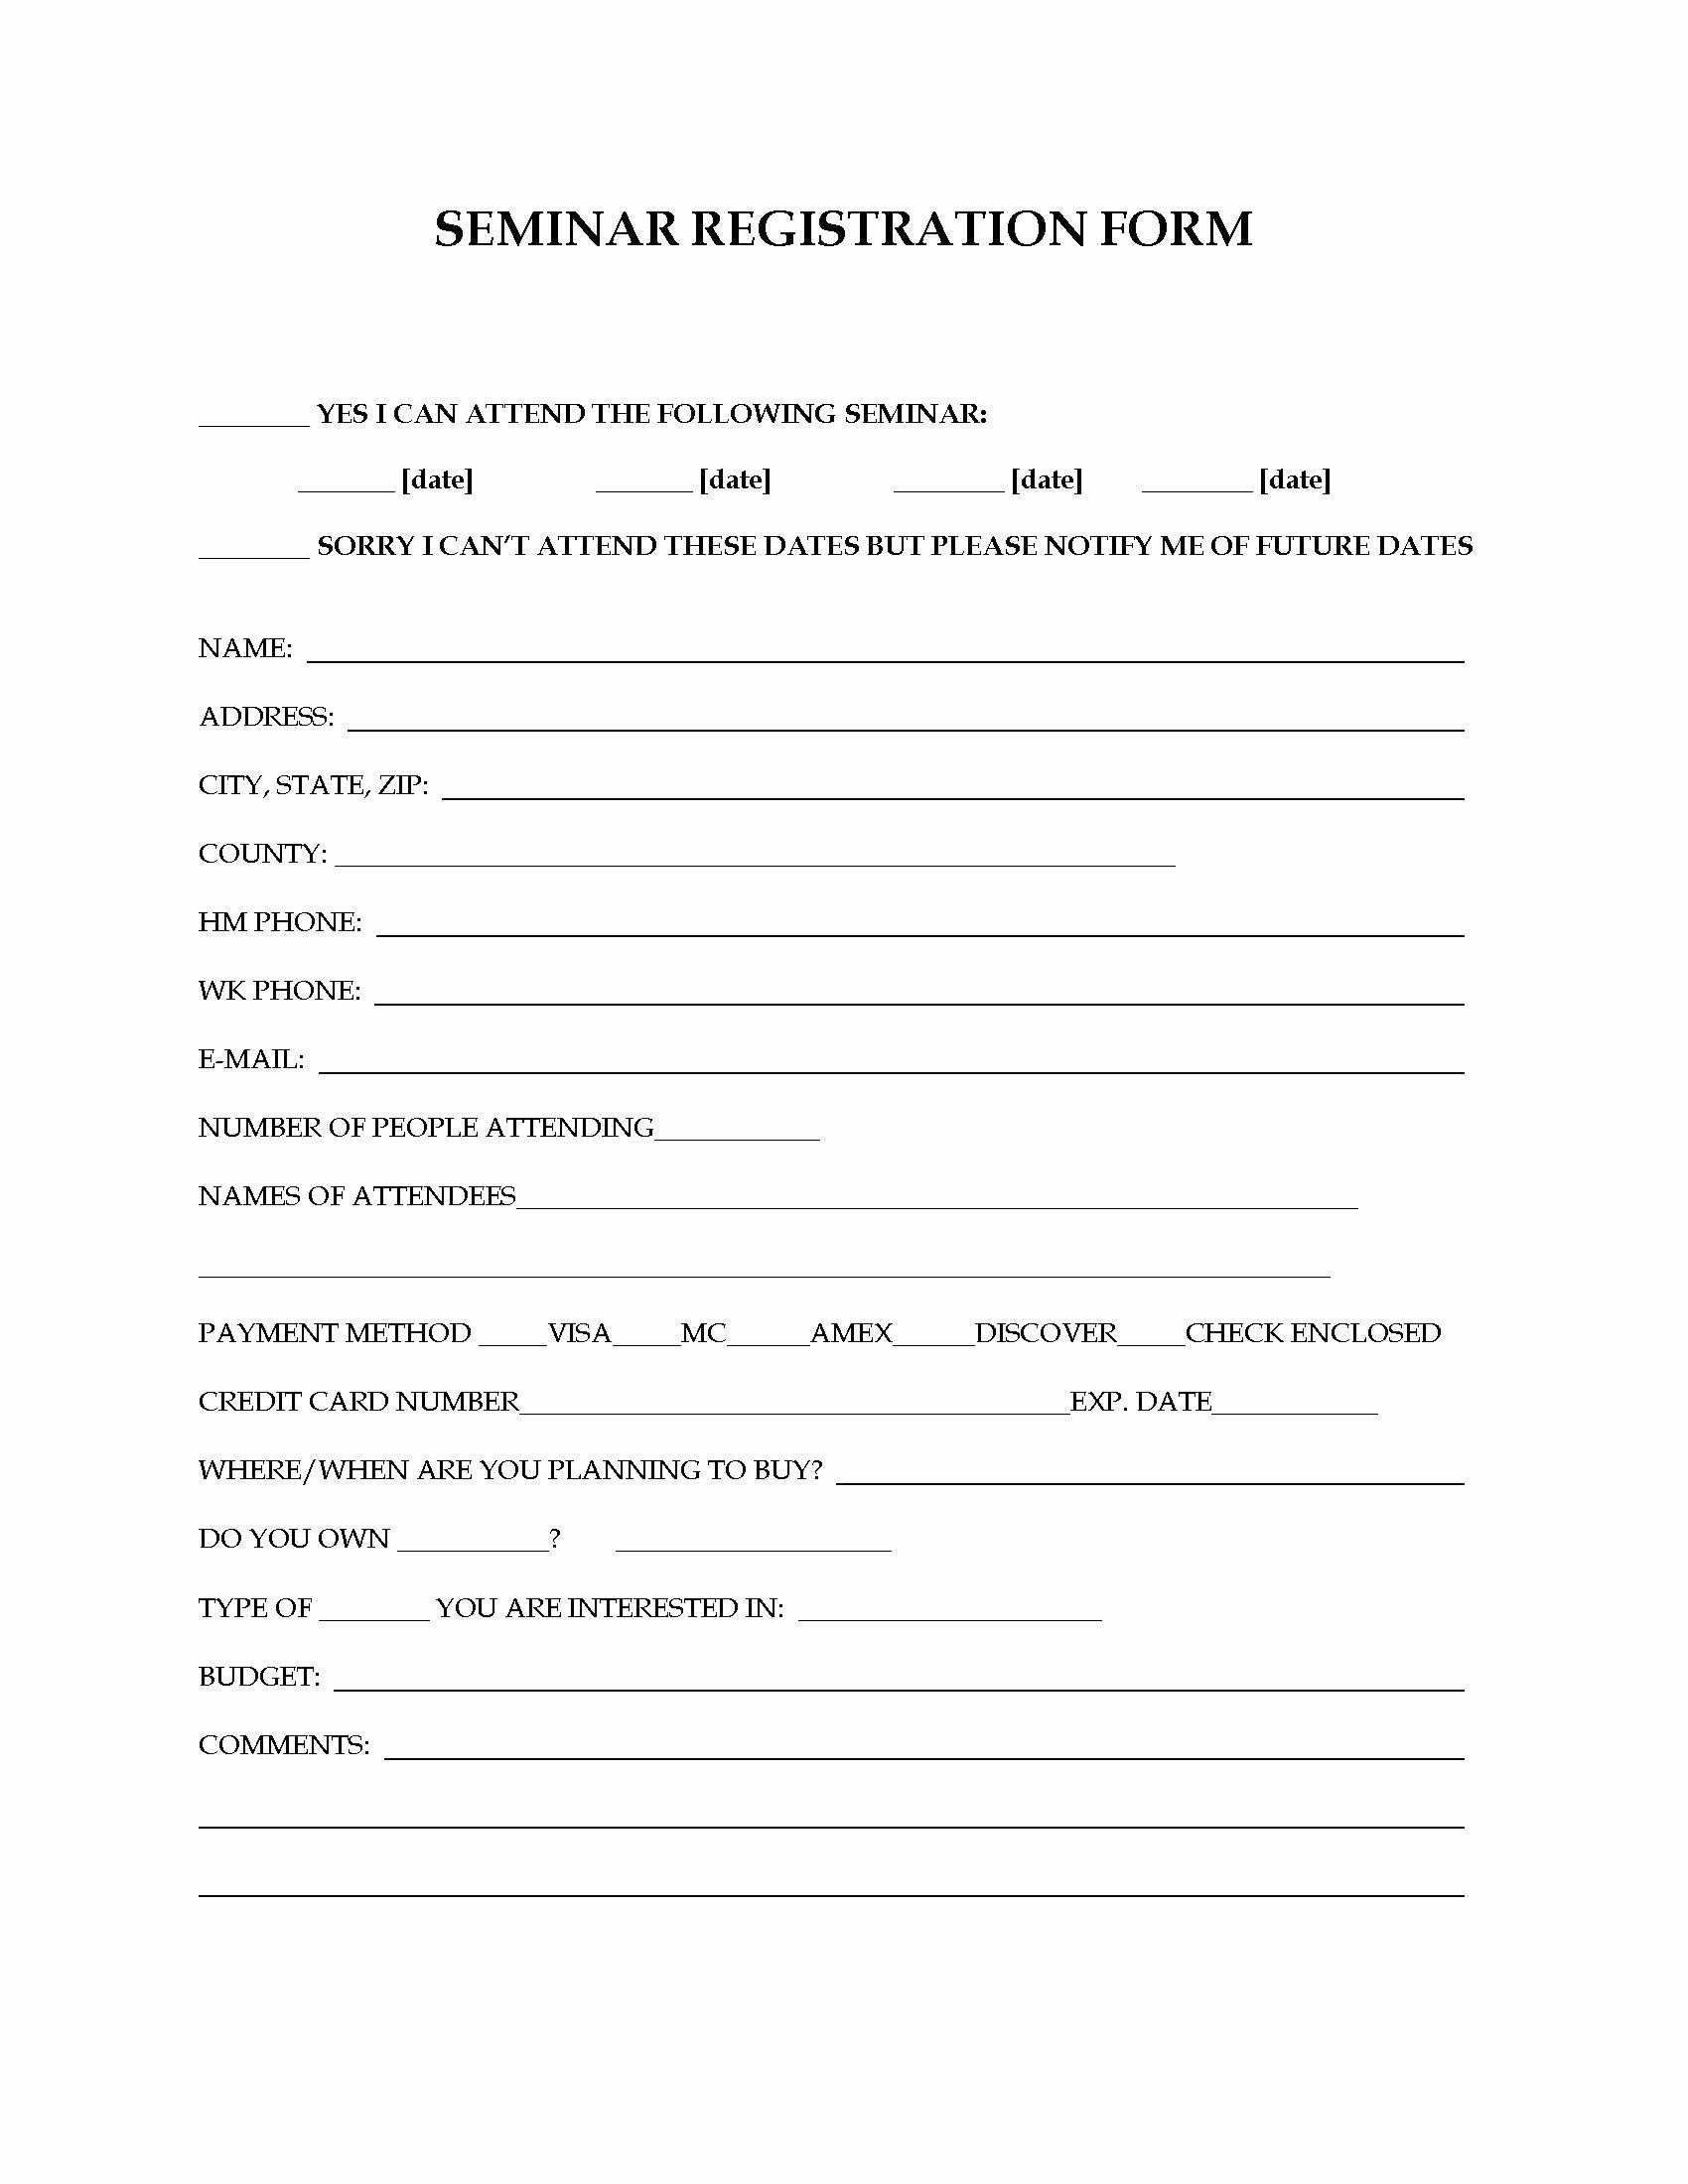 Rma form Template Fresh Rma form Template Hashtag Bg